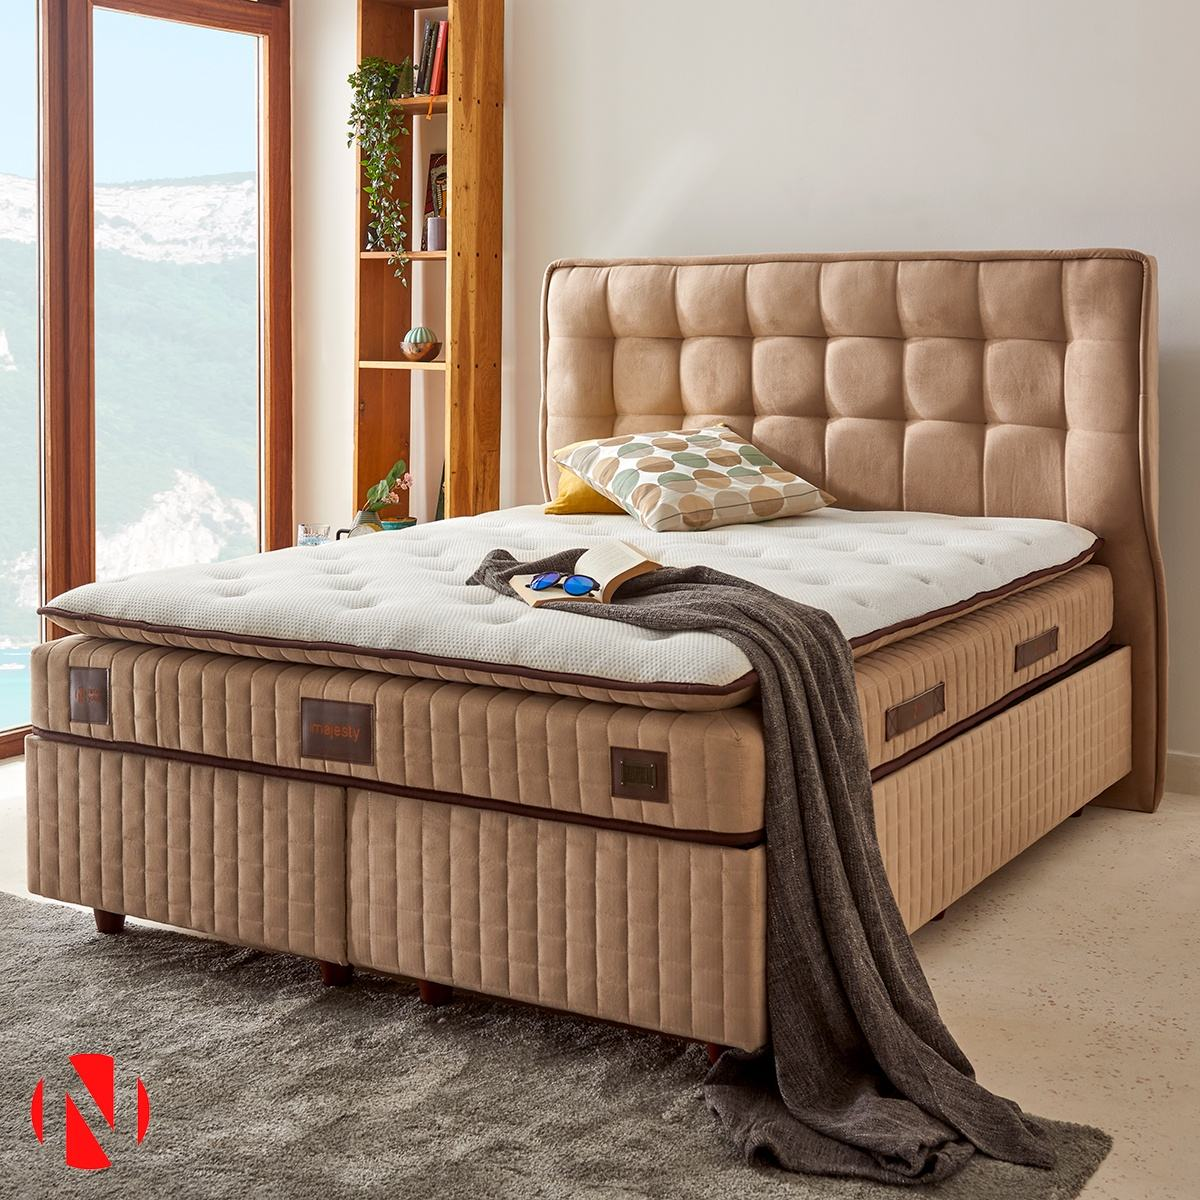 Niron Comfort MAJESTY Double Bed with 30Cm Mid-Soft Multi Sring Mattress and Pad Topping